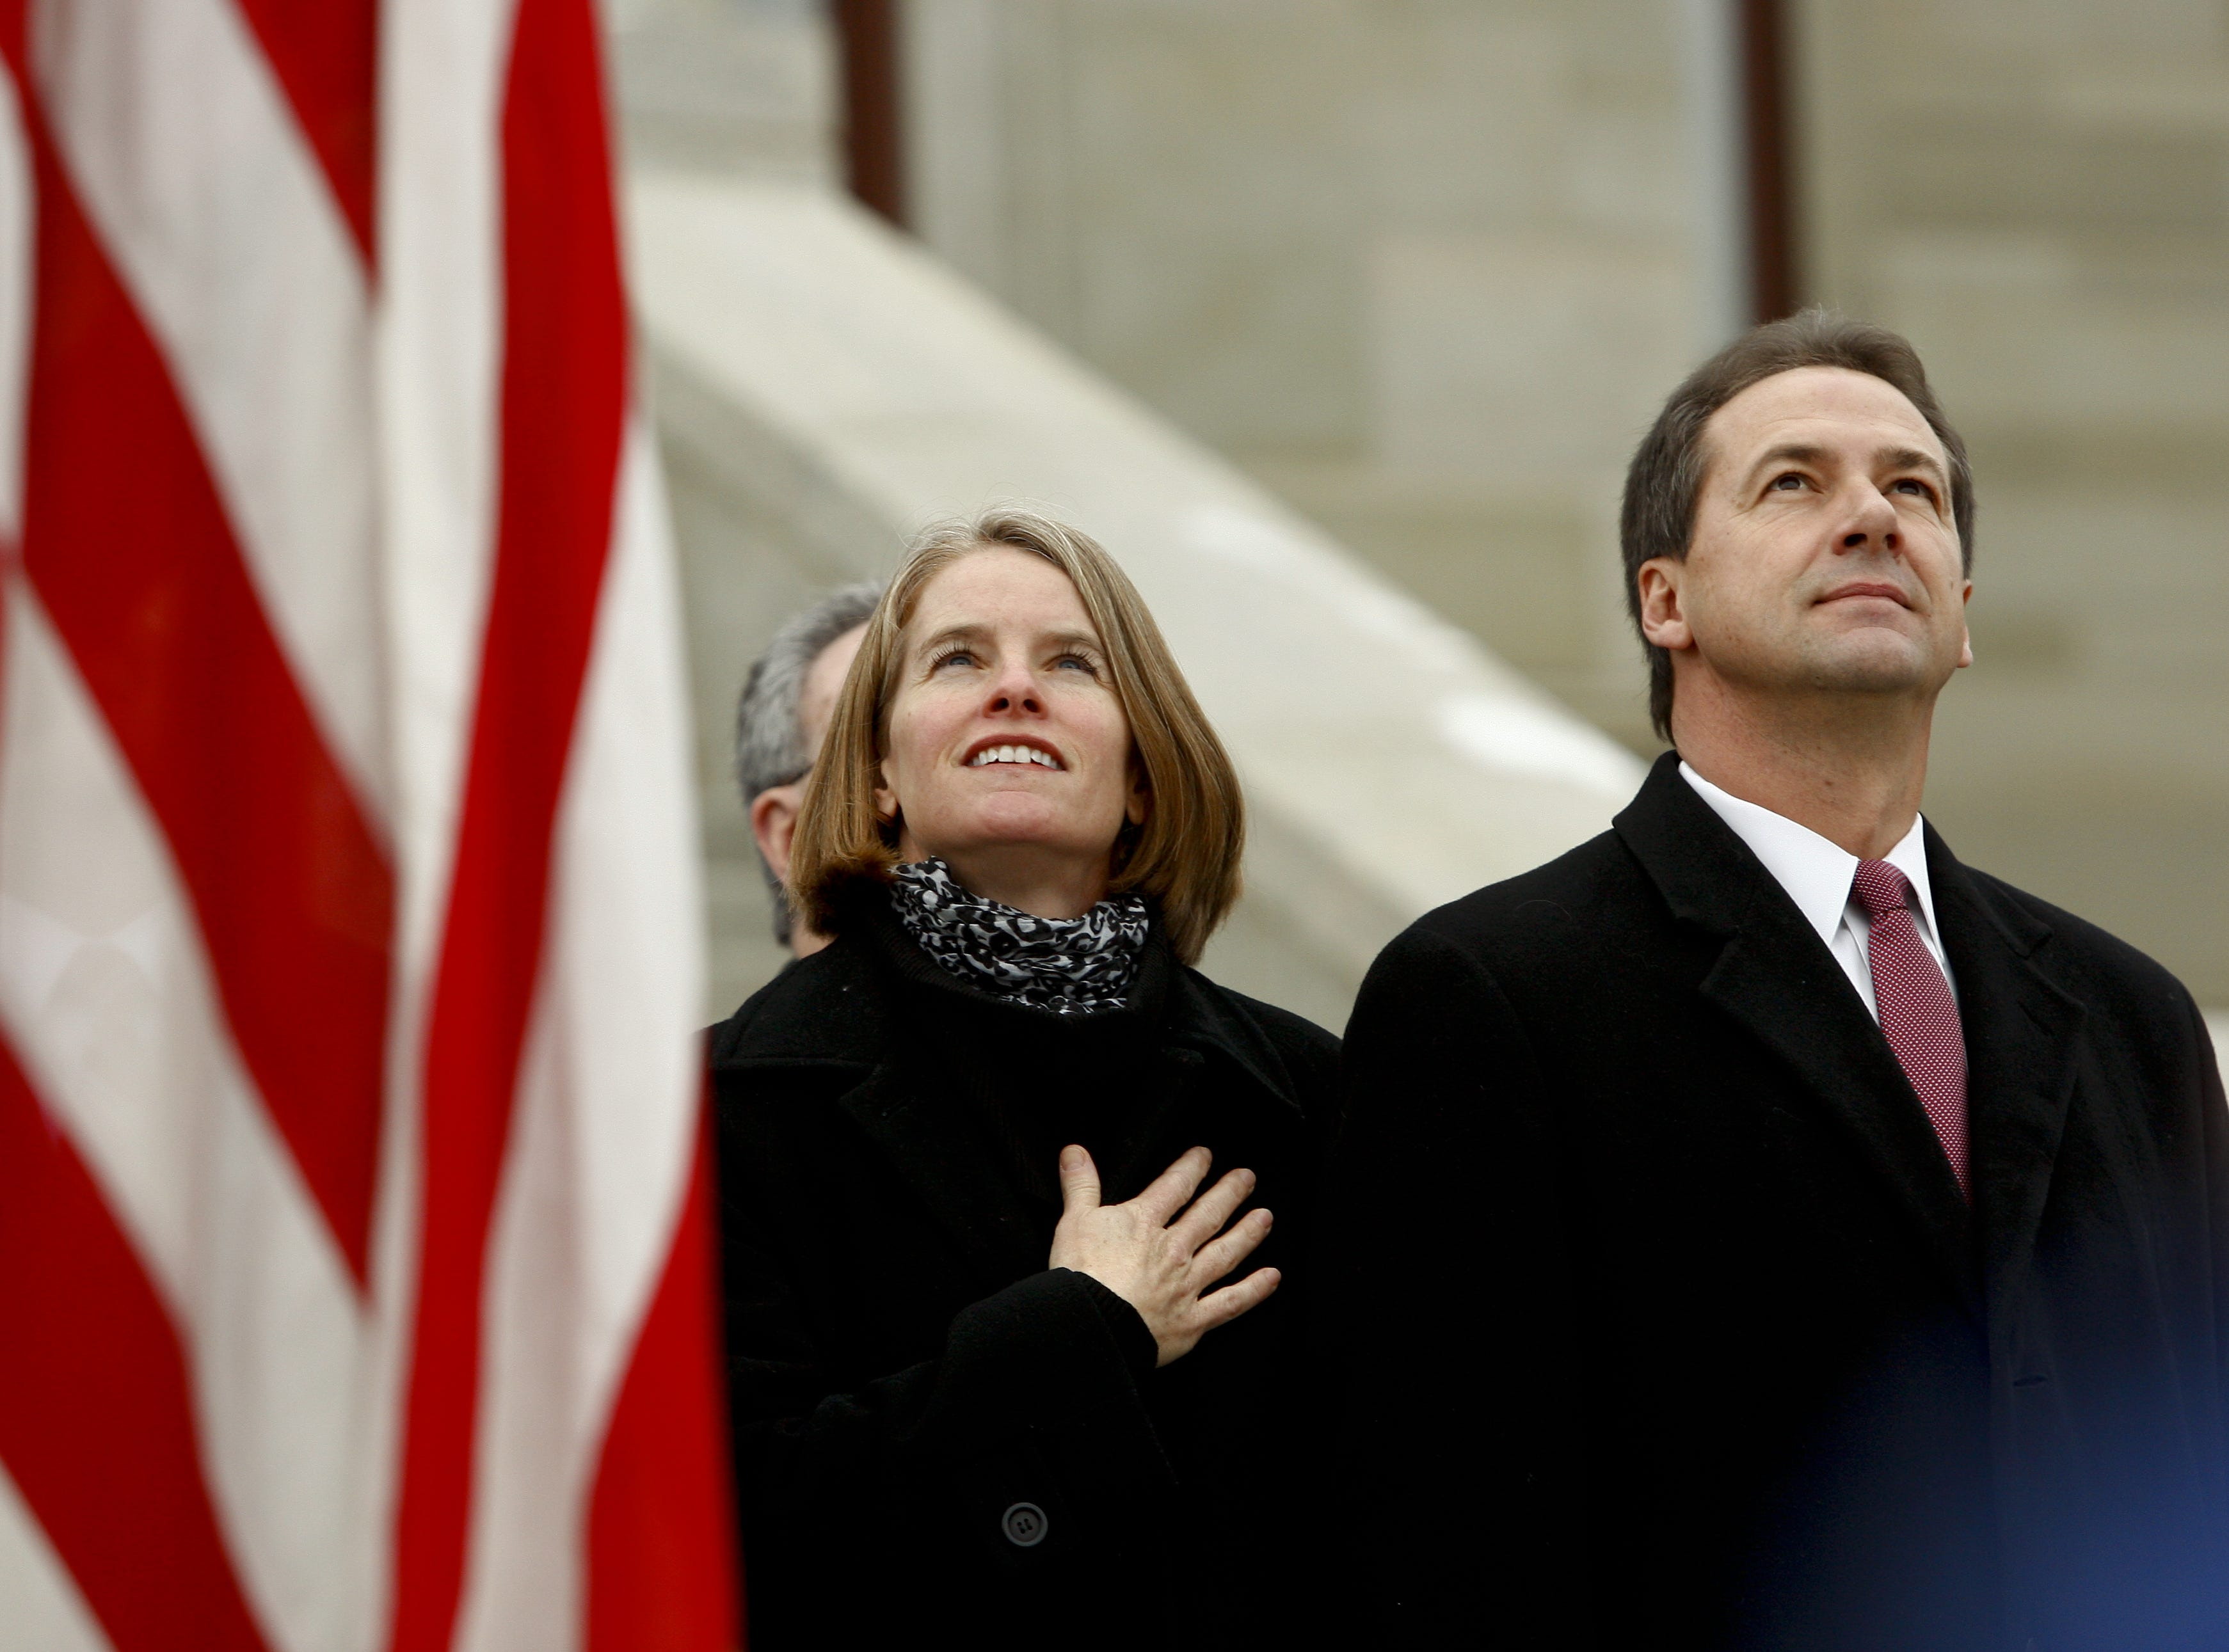 Steve and Lisa Bullock watch F-15s from the Montana Air National Guard fly over the Capitol Monday before Bullock is sworn in to office as Montana¿s 24th governor. TRIBUNE PHOTO/LARRY BECKNER Steve and Lisa Bullock watch F-15s from the Montana Air National Guard fly over the Capitol Monday before Bullock is sworn in to office as Montana's 24th governor on the steps of the Capitol.  TRIBUNE PHOTO/LARRY BECKNER